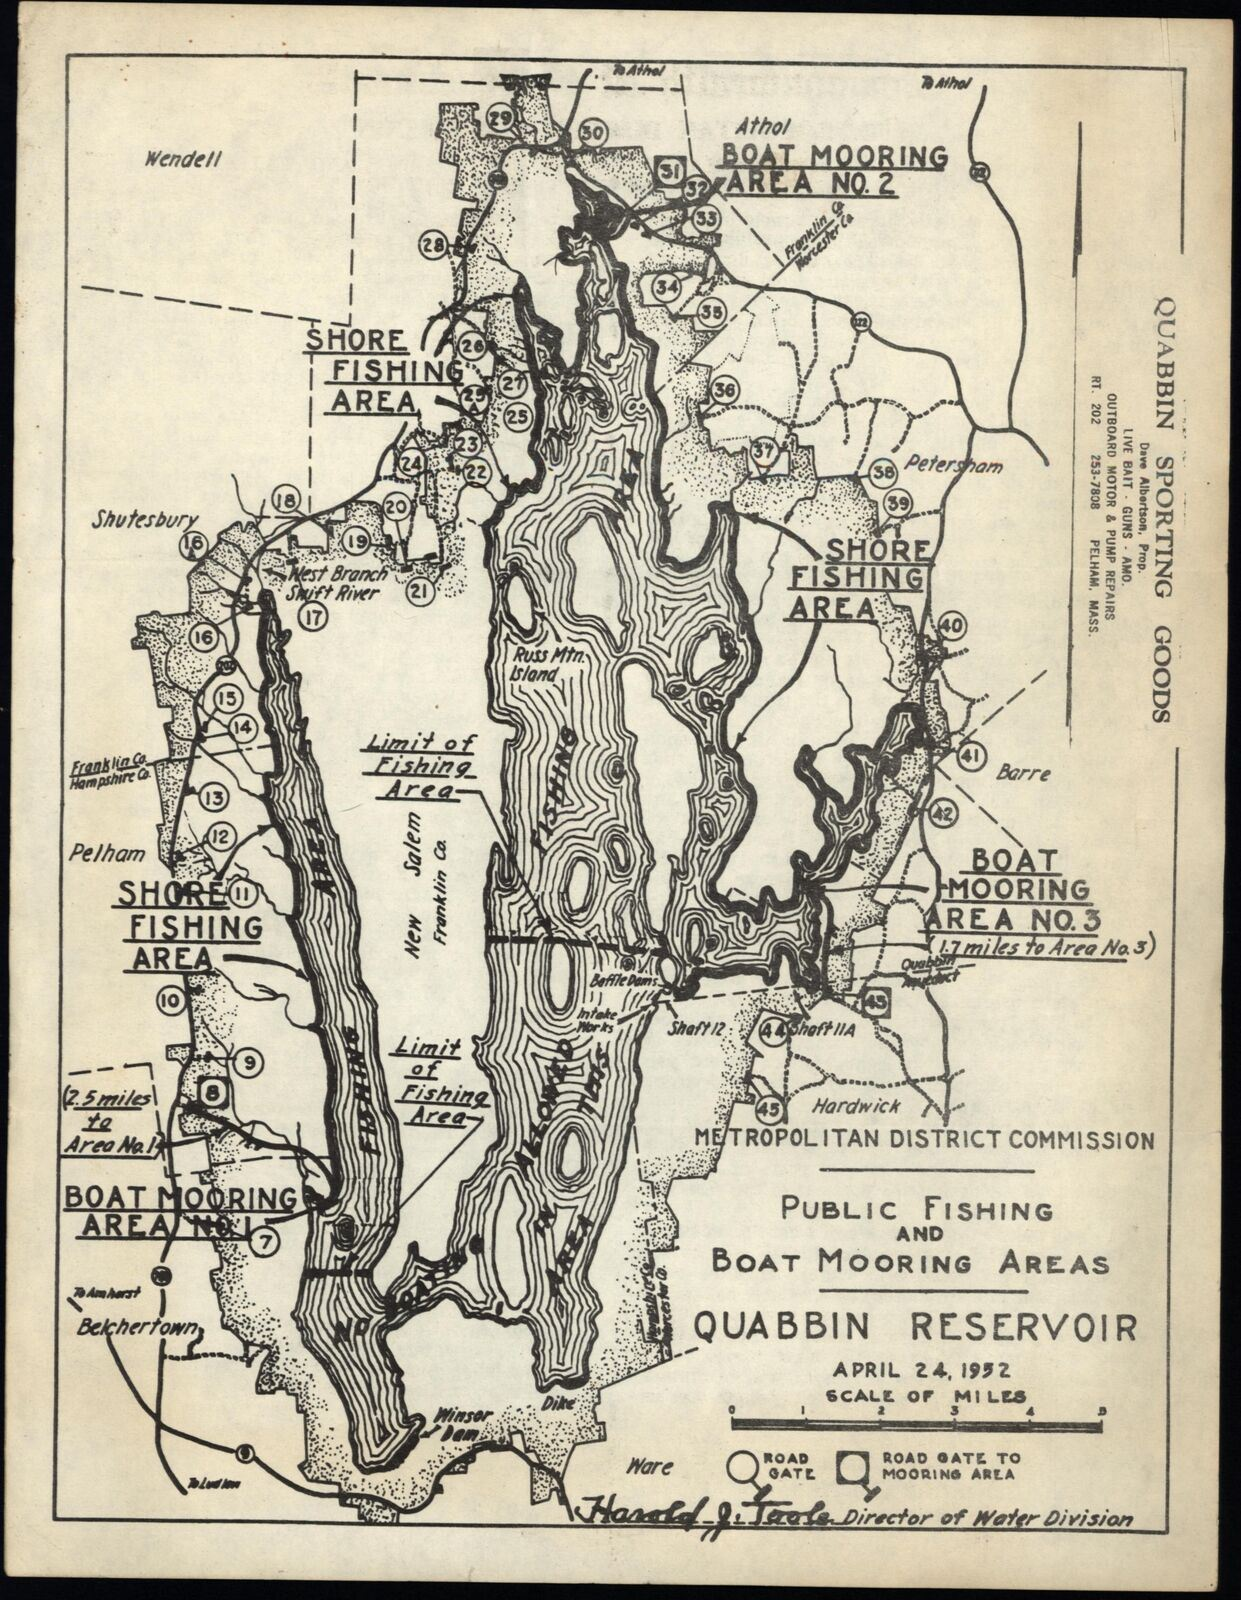 Details about Machusetts Quabbin Reservoir 1952 fishing boating sporting on new england hiking map, cape cod hiking map, united states hiking map, quabbin bicycle routes map, loch raven map, quabbin gate map, cranberry river hiking map, lake mead hiking map, wachusett reservoir map, quabbin reservoir topographic map, blue hills hiking map, wachusett mountain hiking map, forest park trail map, cemetary quabbin reservoir map, mount greylock hiking map, quabbin massachusetts abandoned places, quabbin fishing map, quabbin aqueduct map, quabbin visitor center, mount tom hiking map,